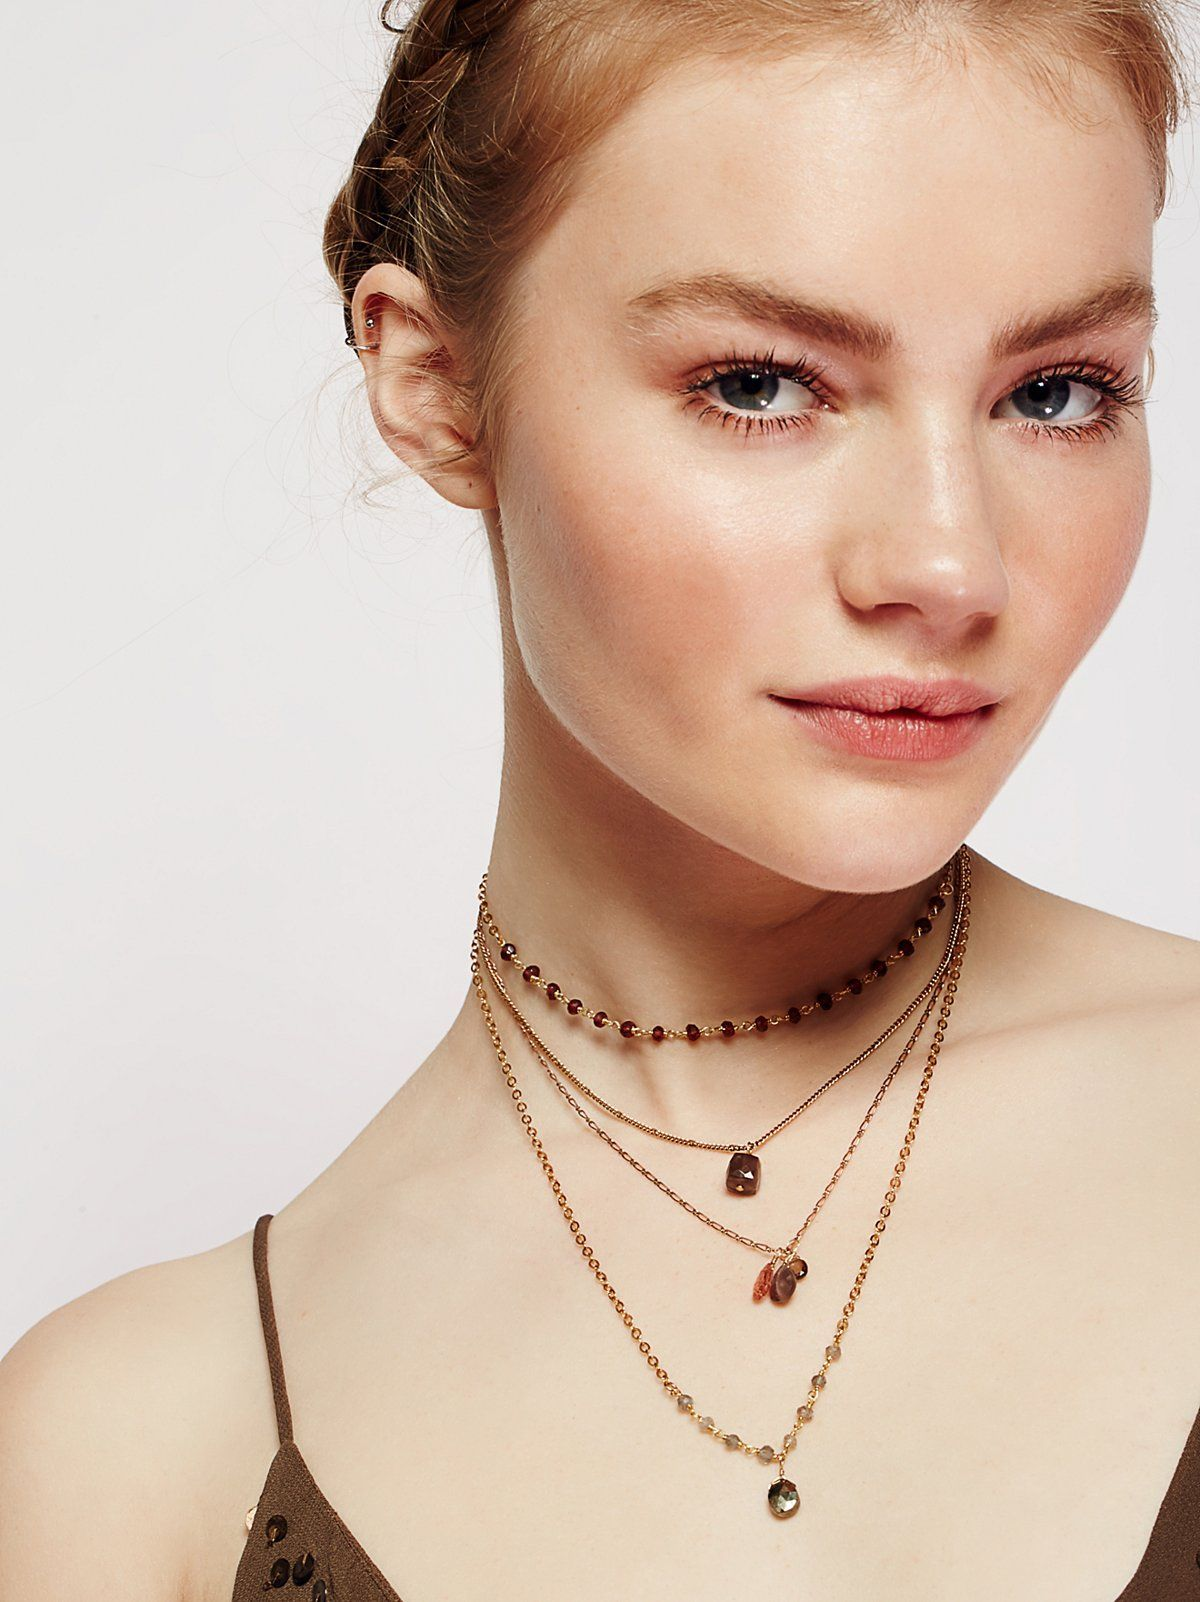 Delicate Quad Tiered Necklace | Multi-layered tiered necklace featuring beautiful xx stones. Adjustable lobster clasp closure.